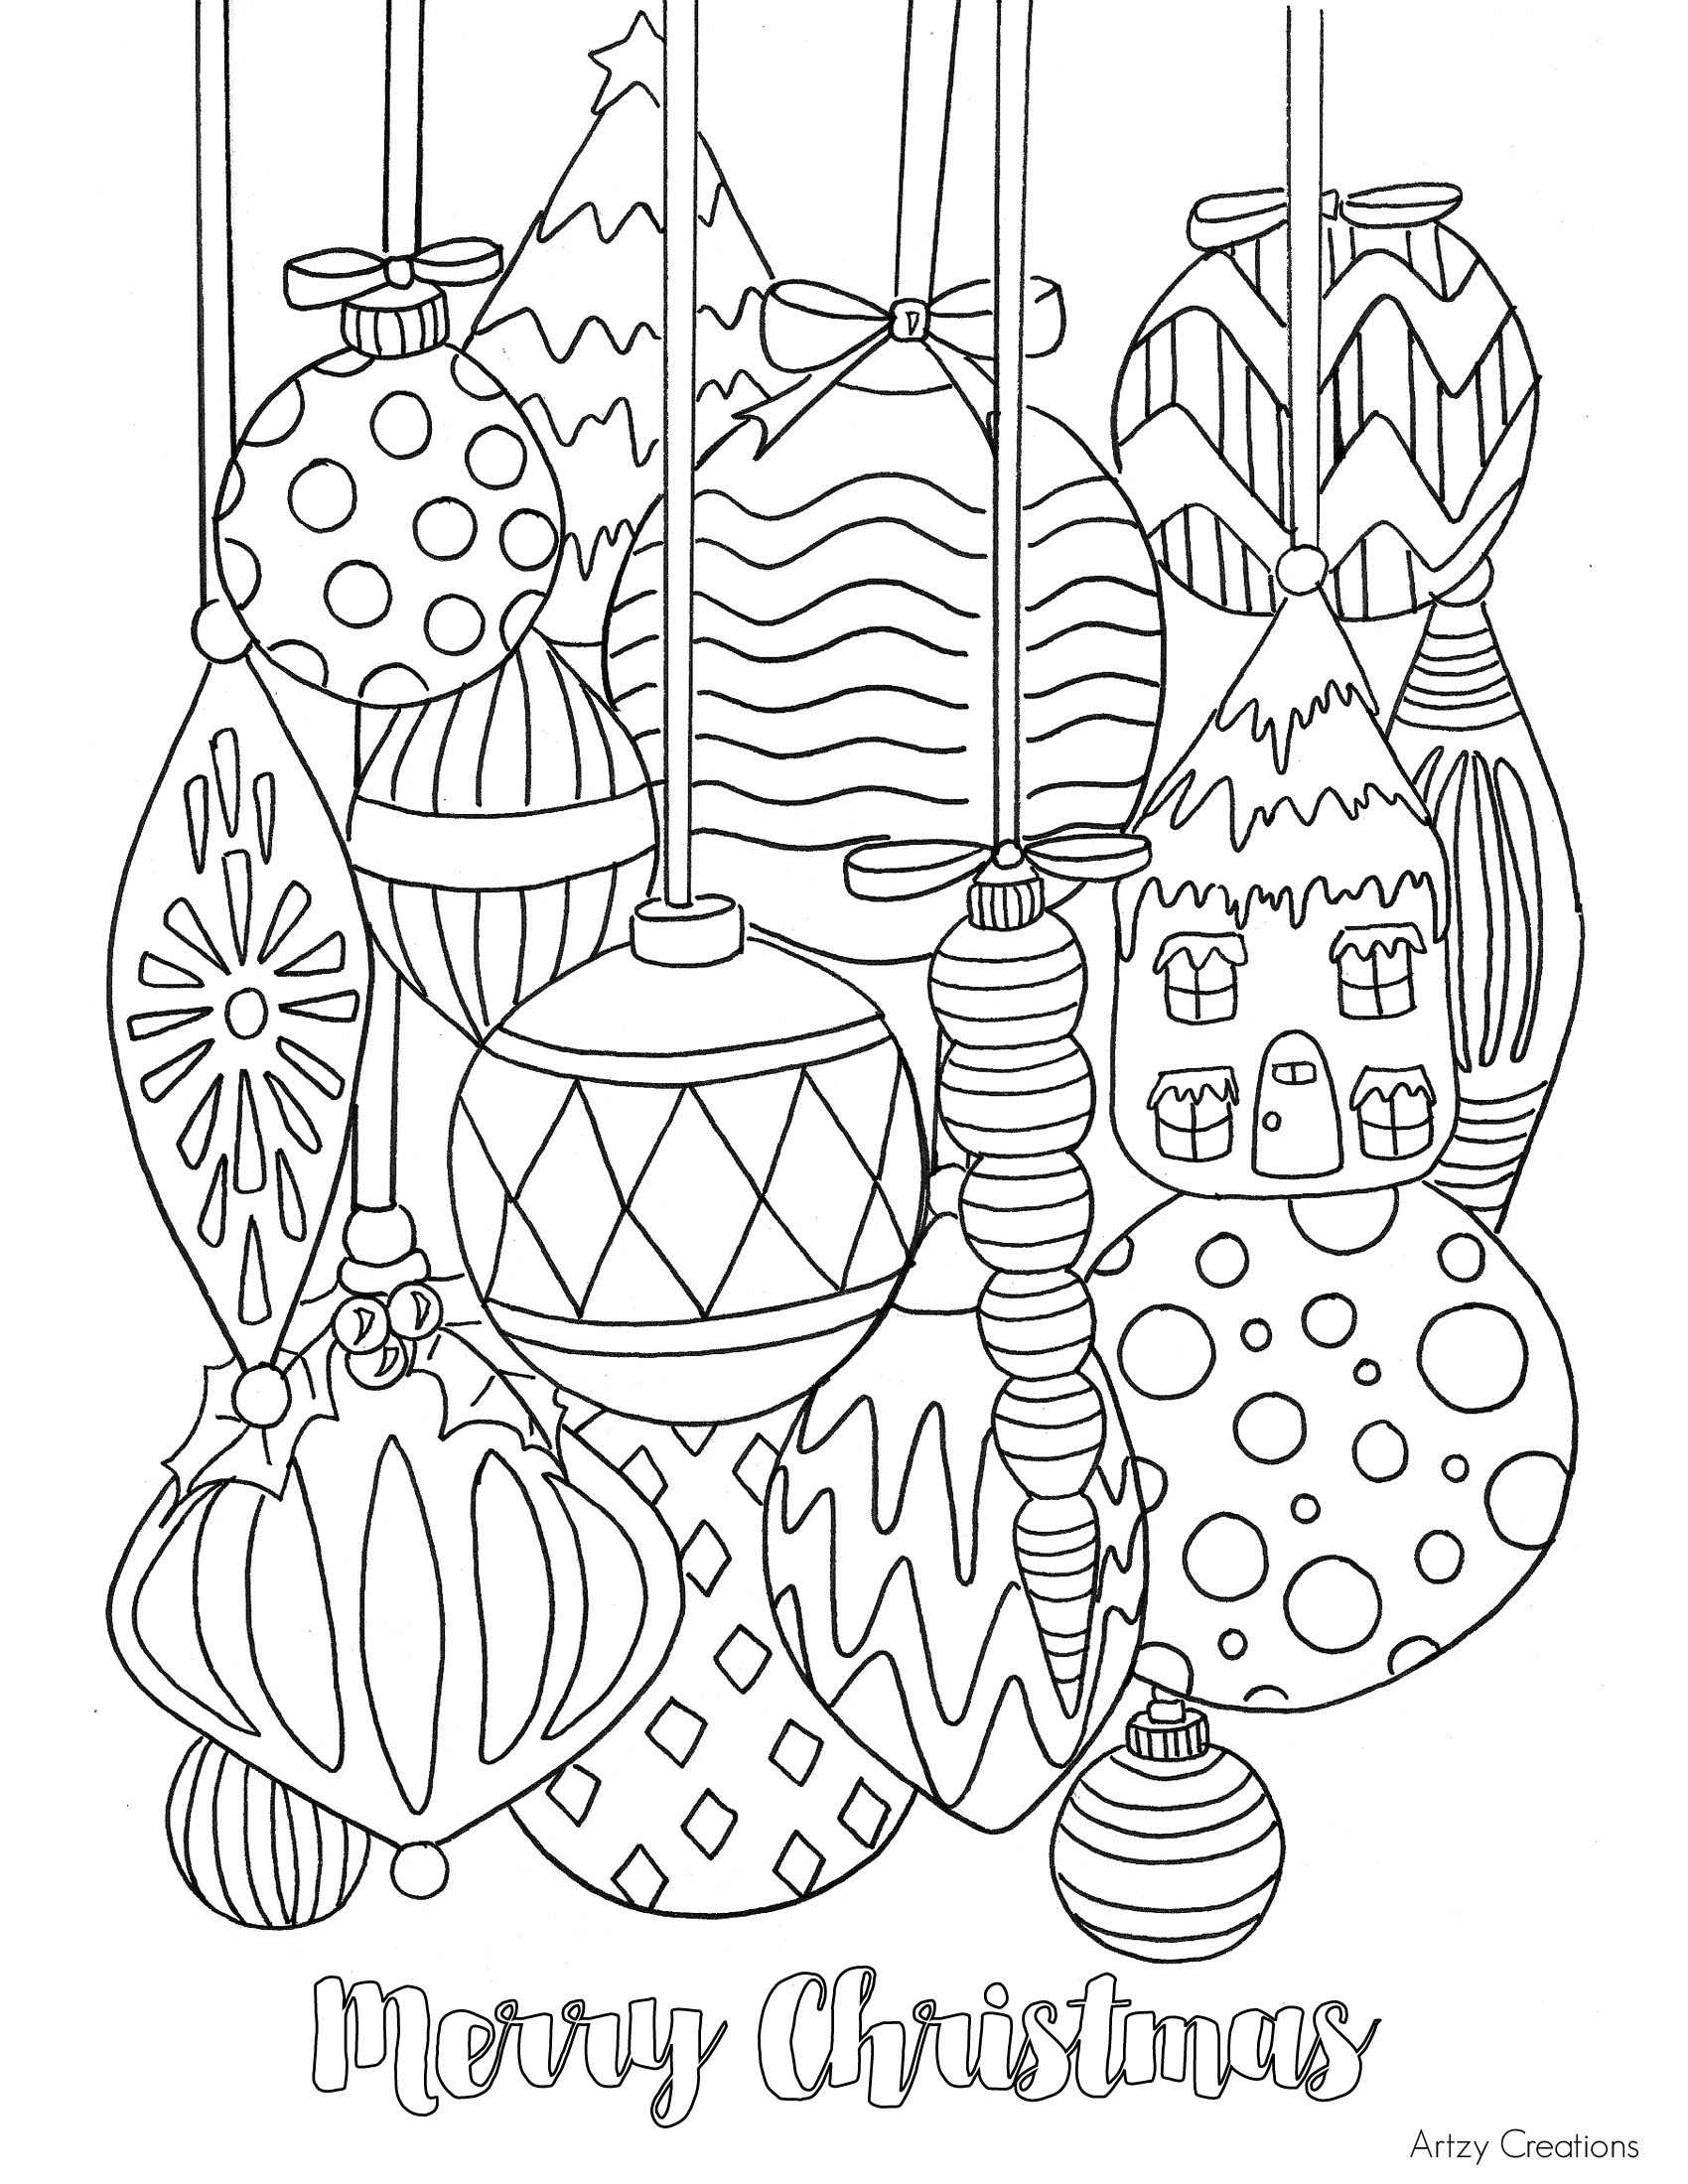 Christmas Division Coloring Sheets With Color By Number Pages